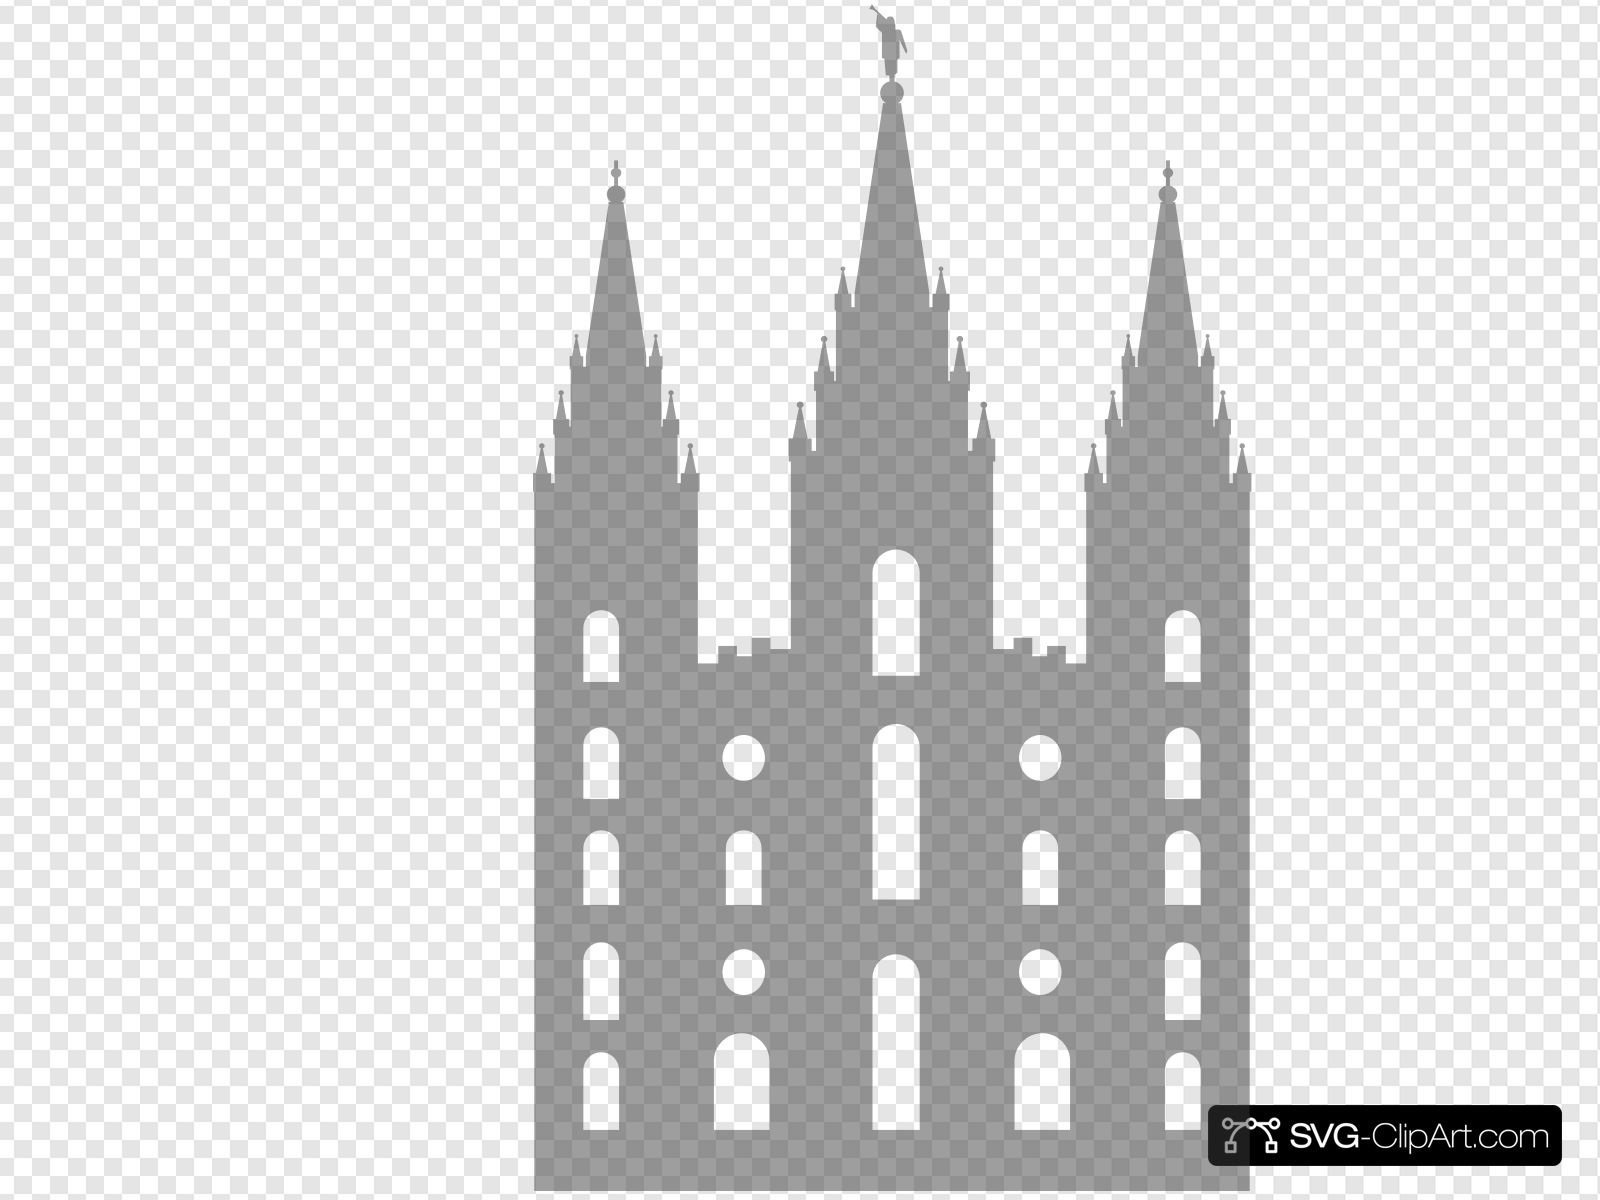 Salt Lake City Temple Clip art, Icon and SVG.